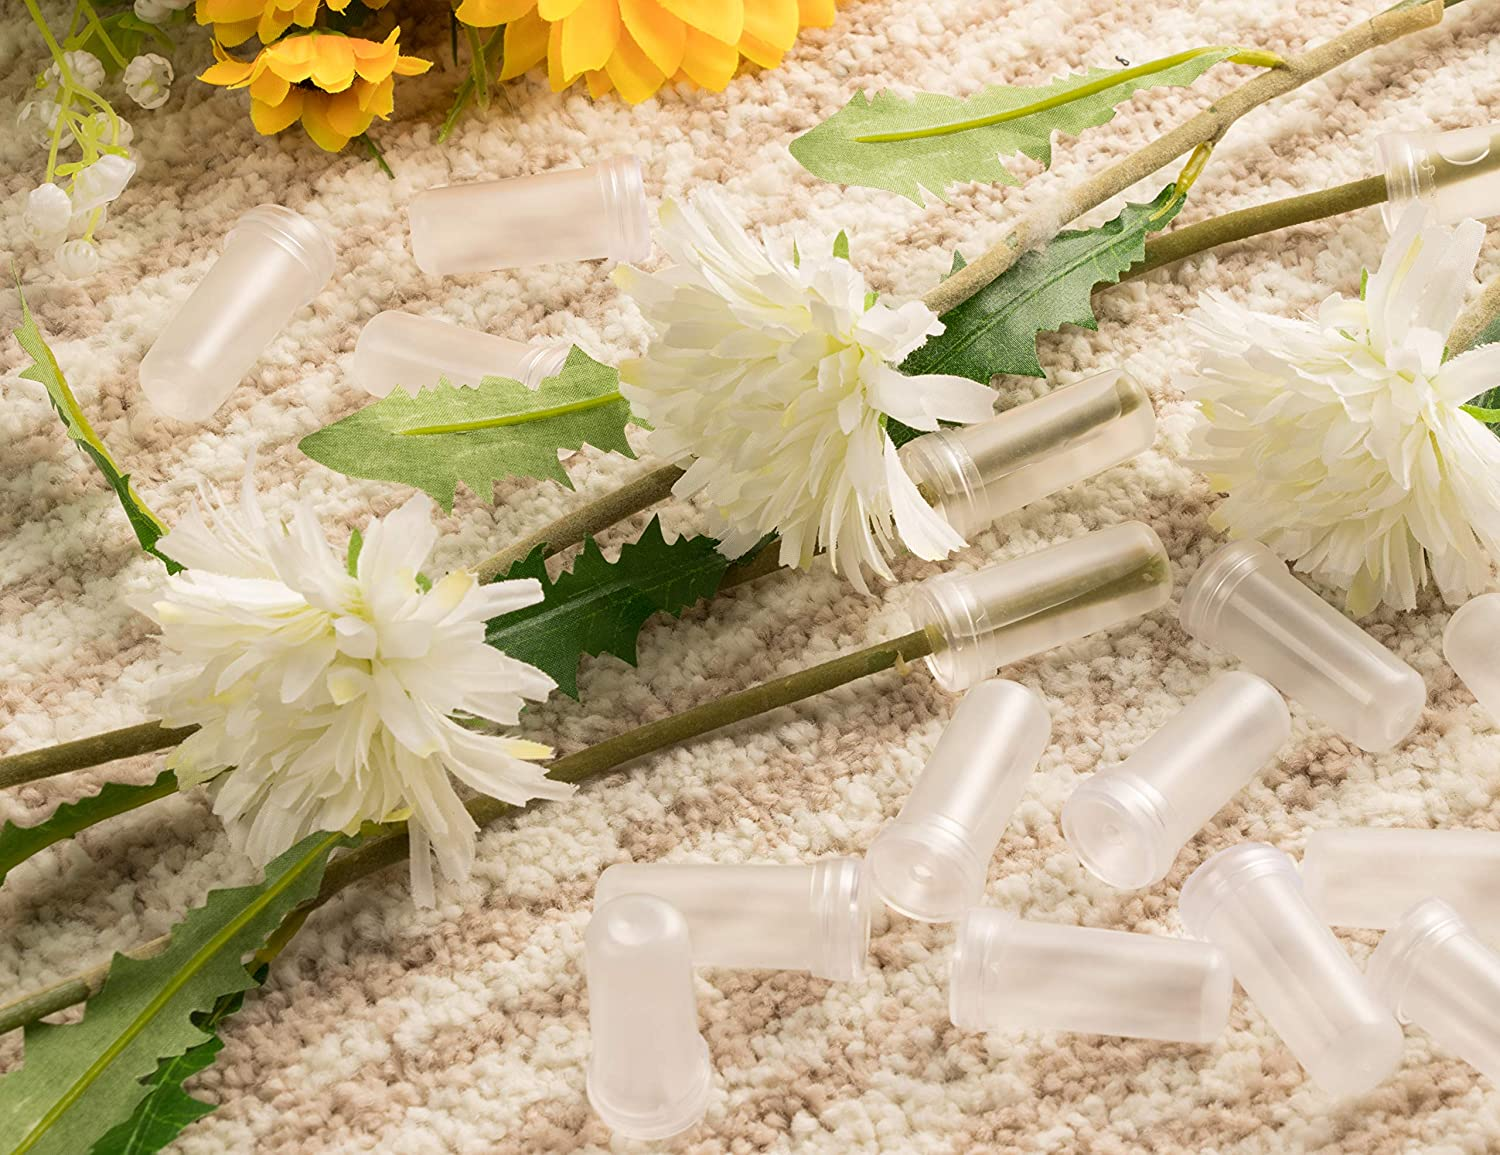 Floral Tube Flower Vials Clear Plastic Opening 3mm 200-Pack Flower Tube Floral Water Tube for Flower Arrangements 0.6 x 0.6 x 1.625 Inches